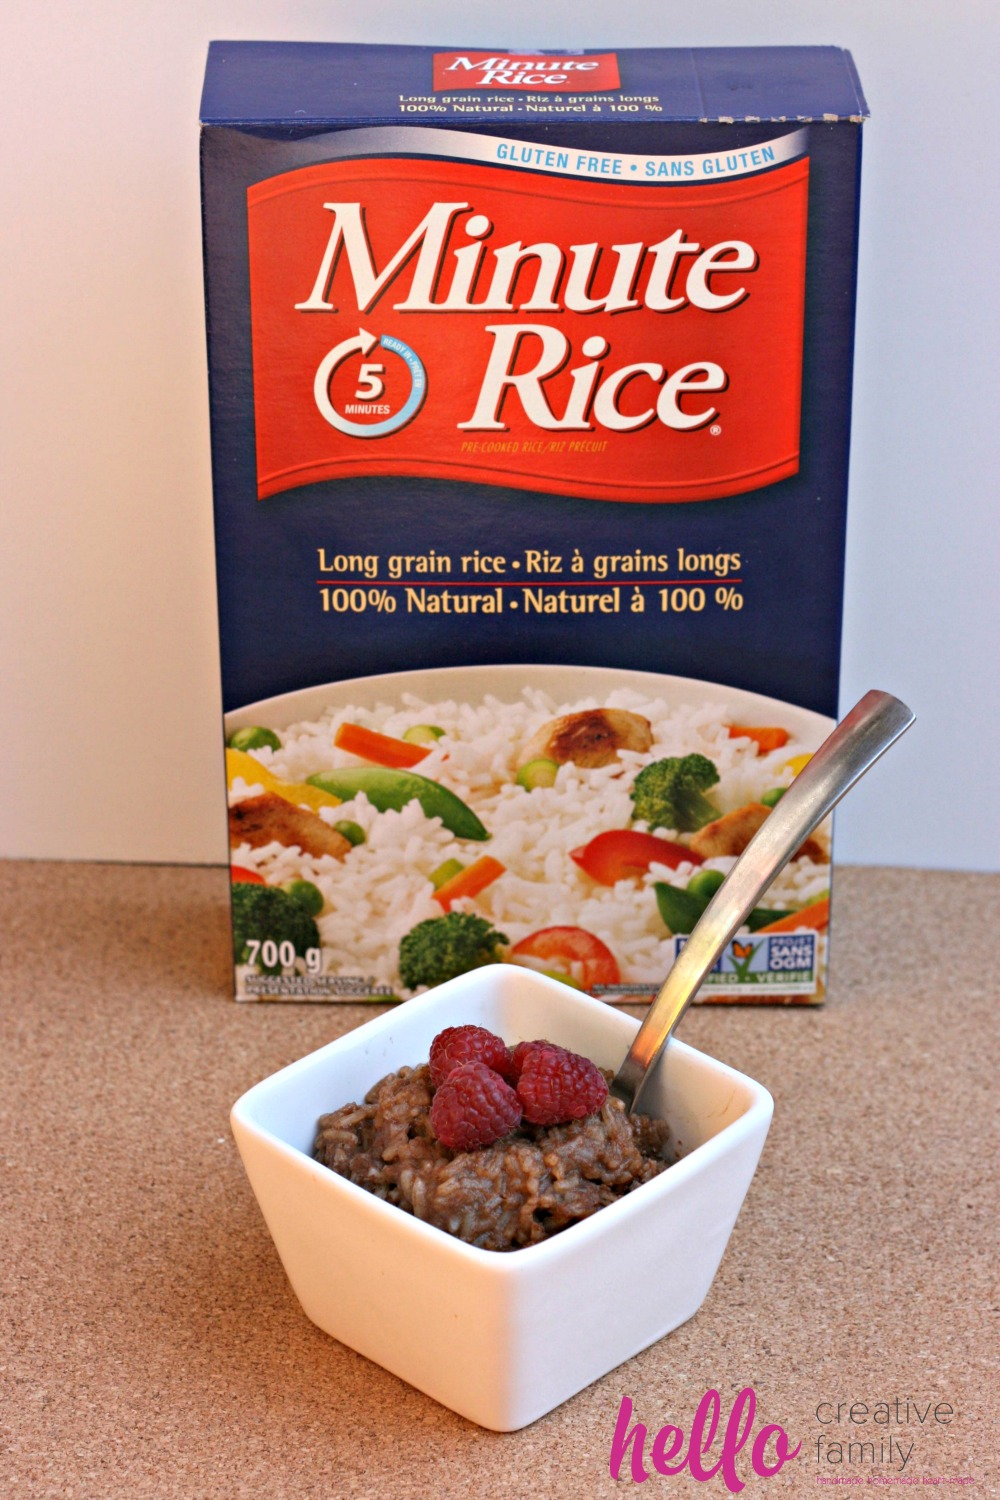 Hello Creative Family's Chocolate Coconut Rice Pudding Recipe using Minute Rice